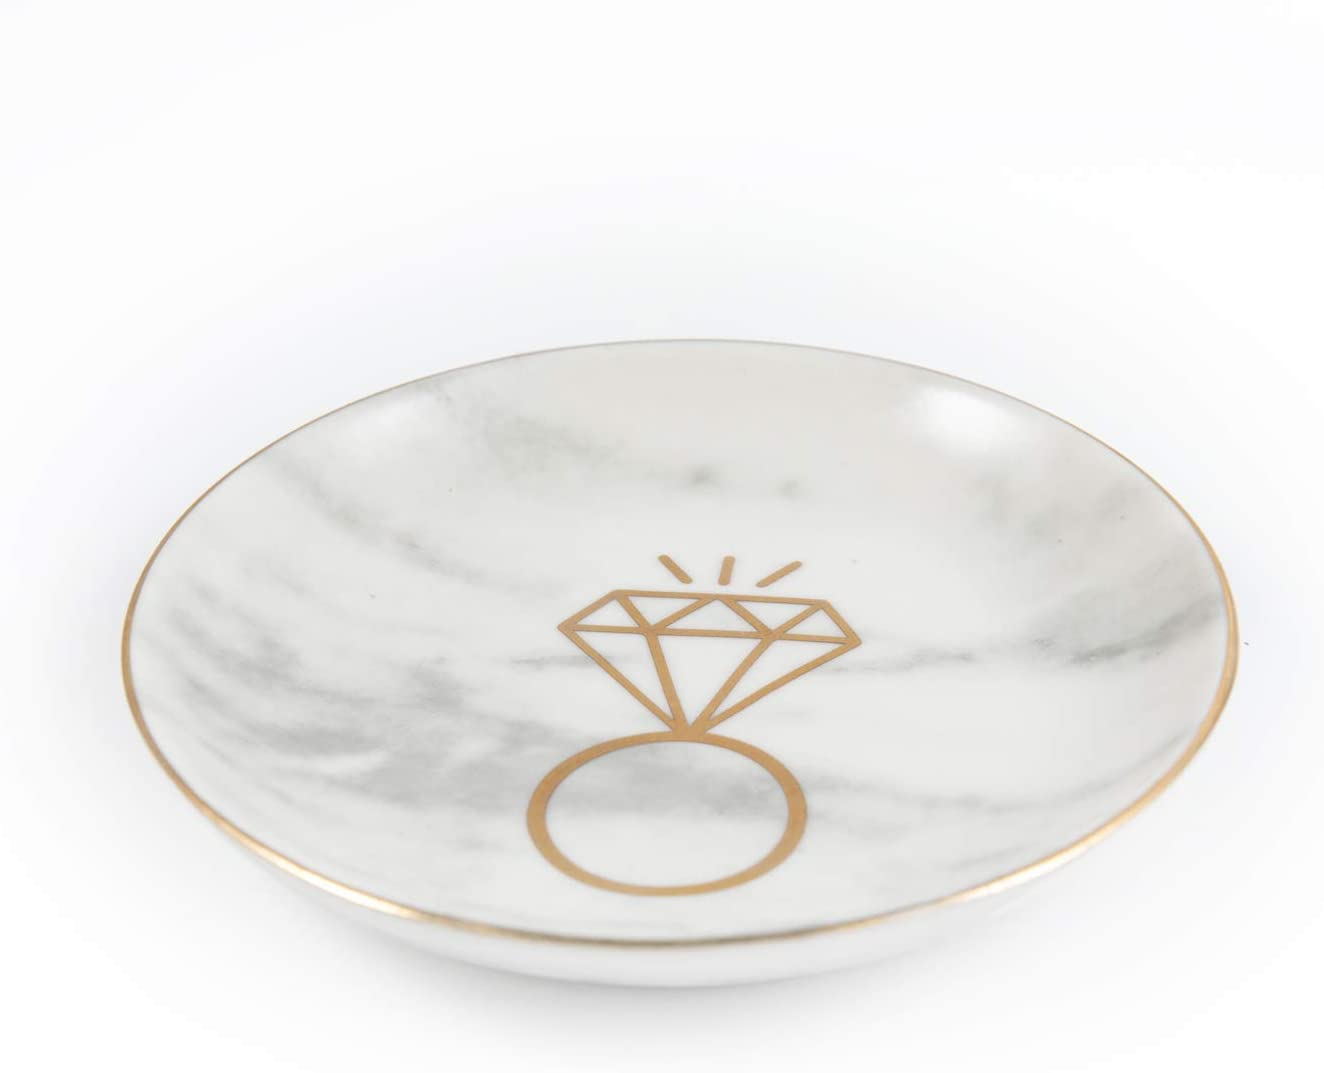 Marble Ceramic Ring Dish Jewelry Dish Ring Holder Jewelry Organizer with Golden Edged - Home Decor - Unique Wedding Gifts, Engagement Gifts, Bridal Shower Gifts, Anniversary Gifts for Women and Wife